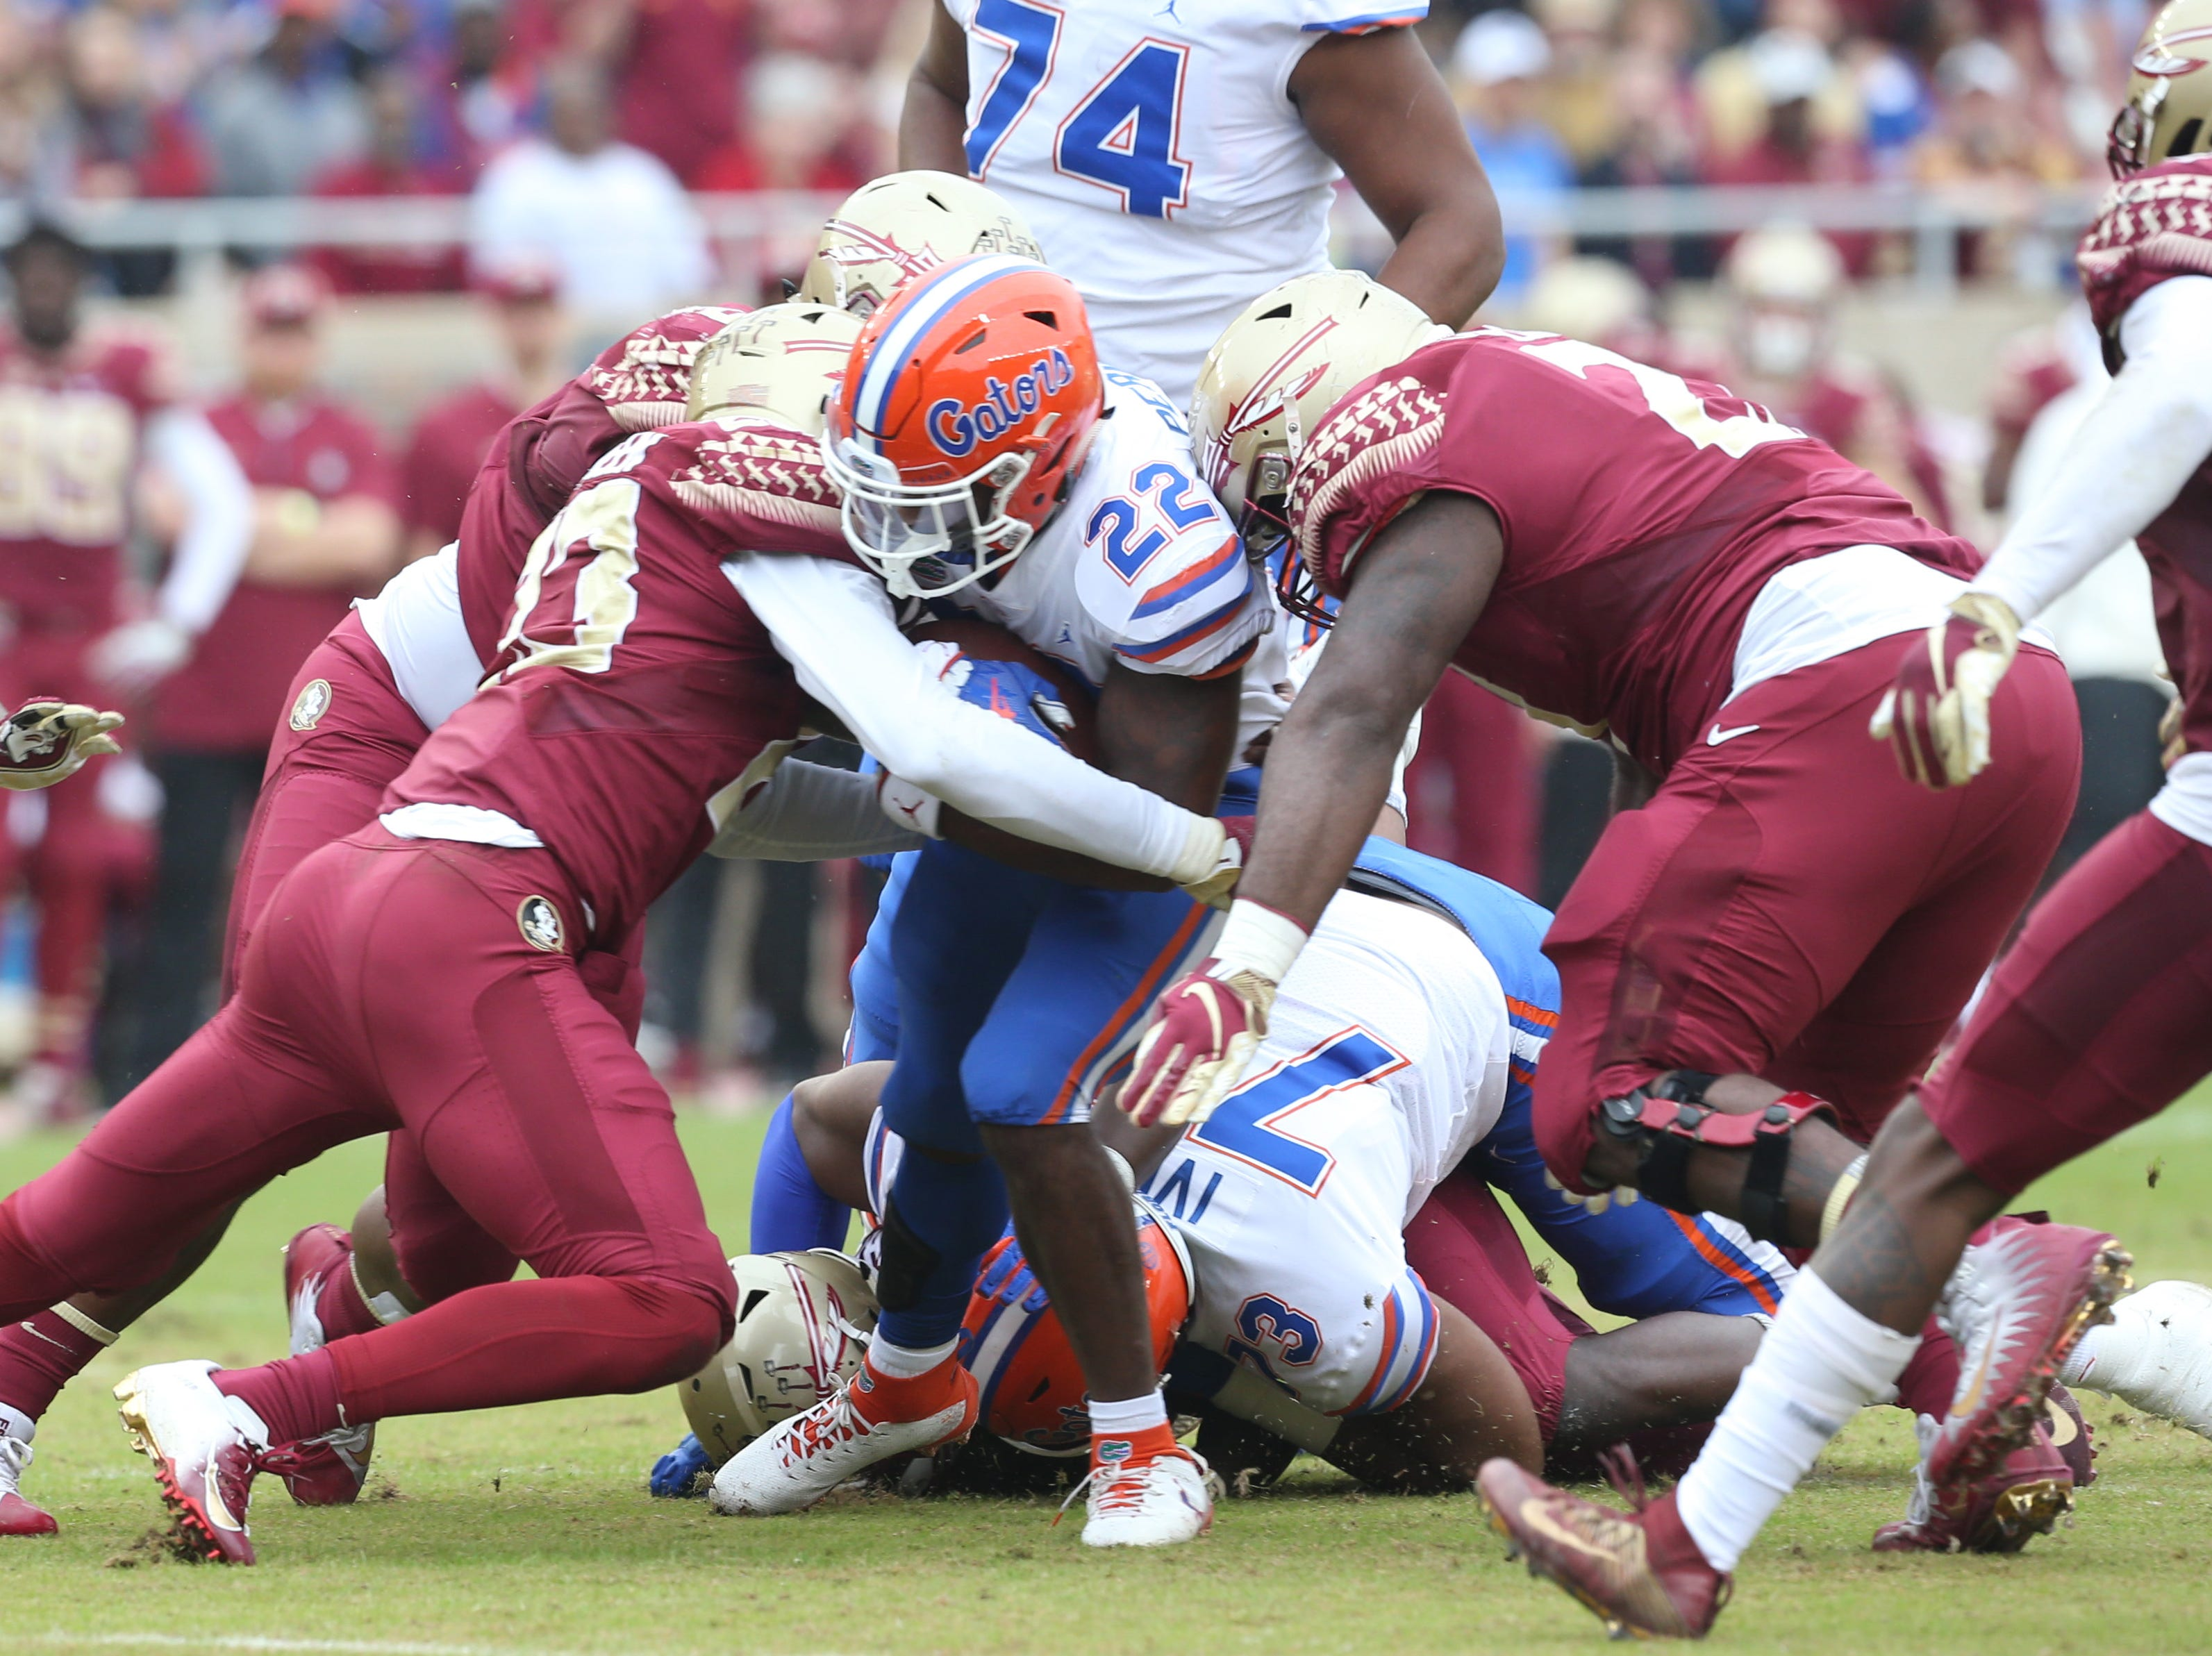 Florida Gators running back Lamical Perine (22) gets swarmed by the defense as the Florida State Seminoles take on their rival the Florida Gators in college football at Doak S. Campbell Stadium, Saturday, Nov. 24, 2018.